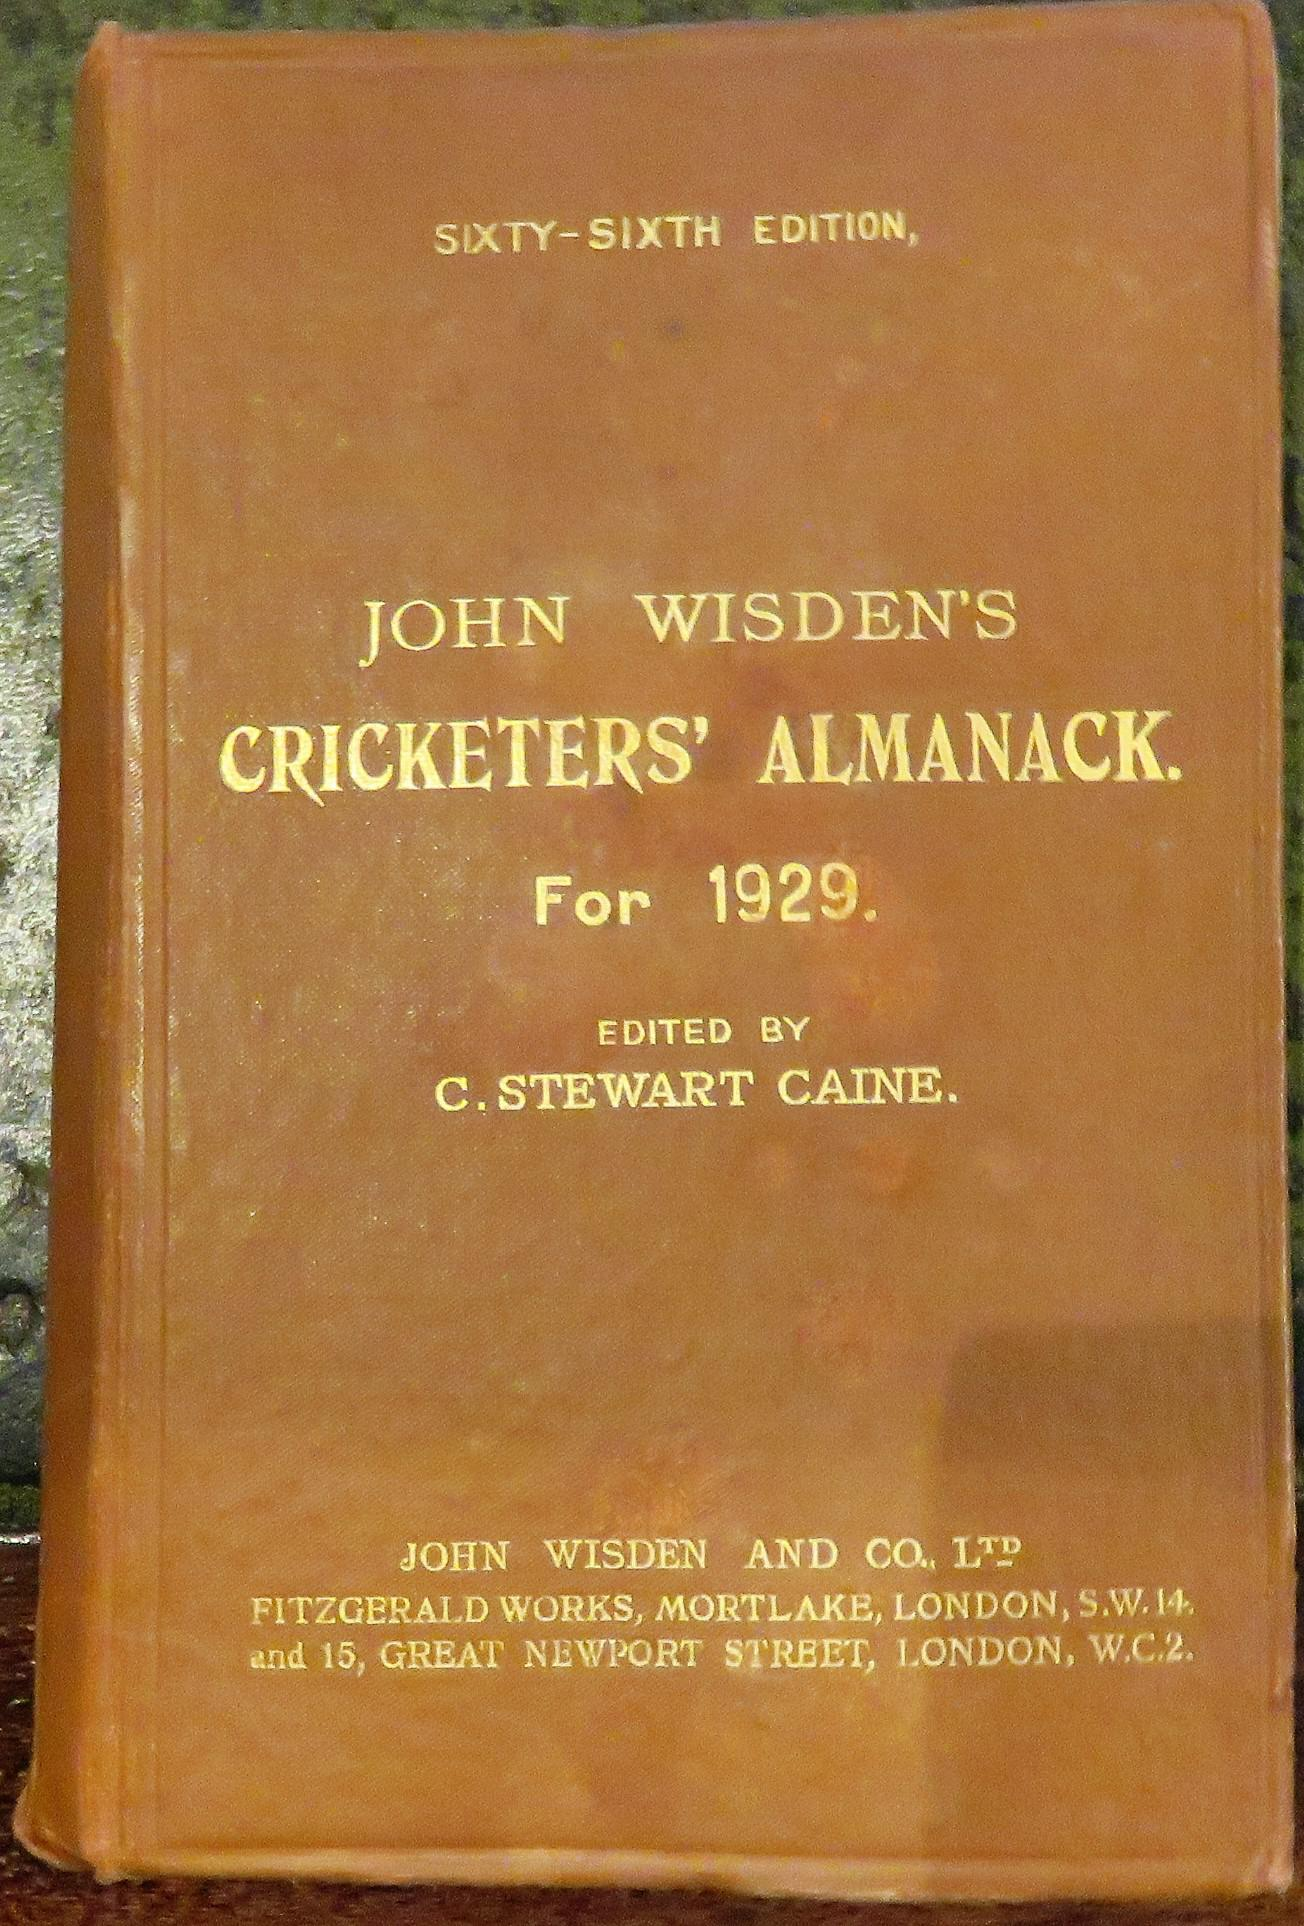 **John Wisden's Cricketers' Almanack For 1929**